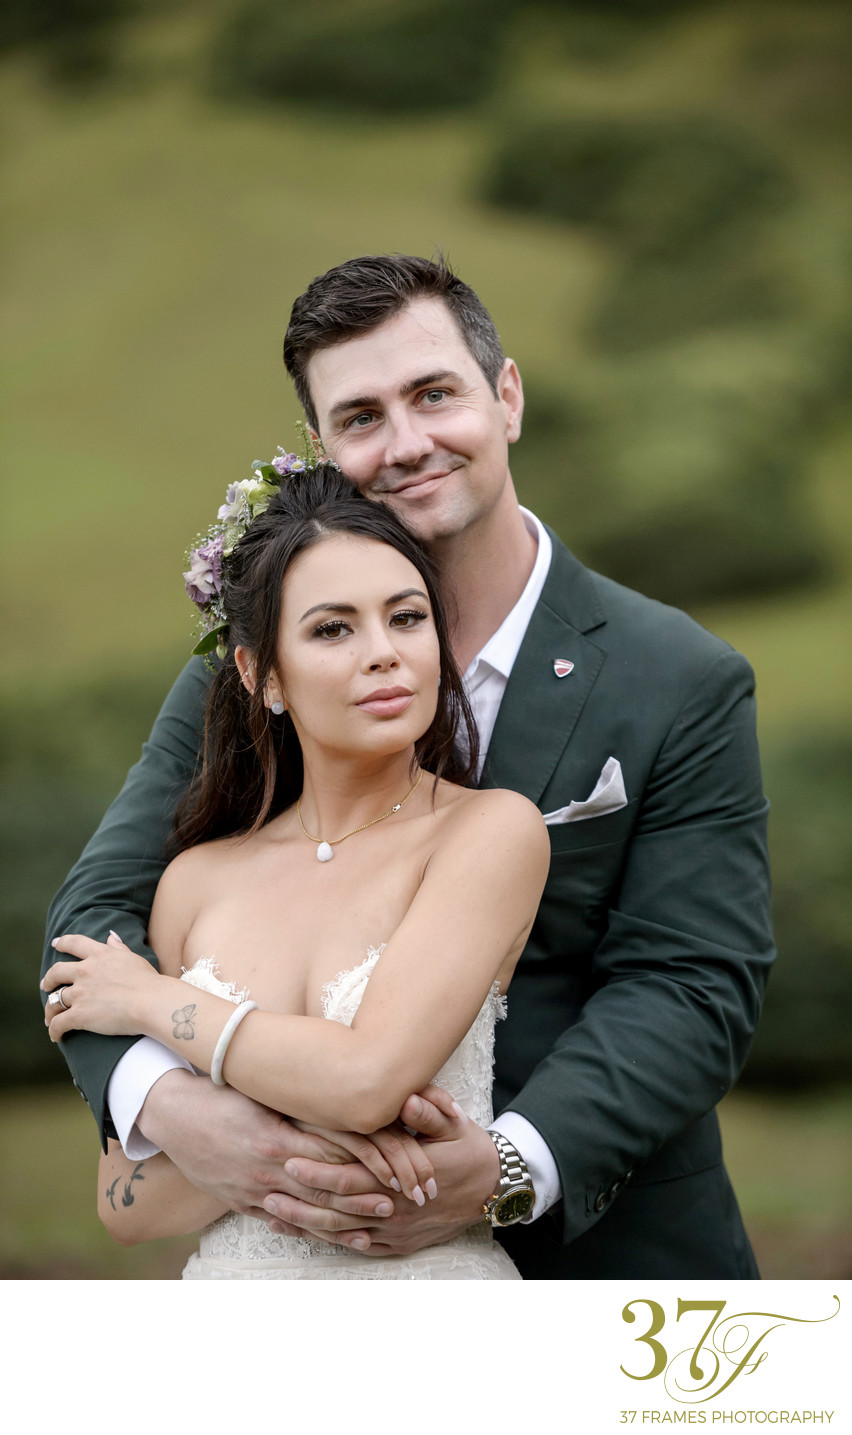 Vendor Recommendations - Janel Parrish Wedding